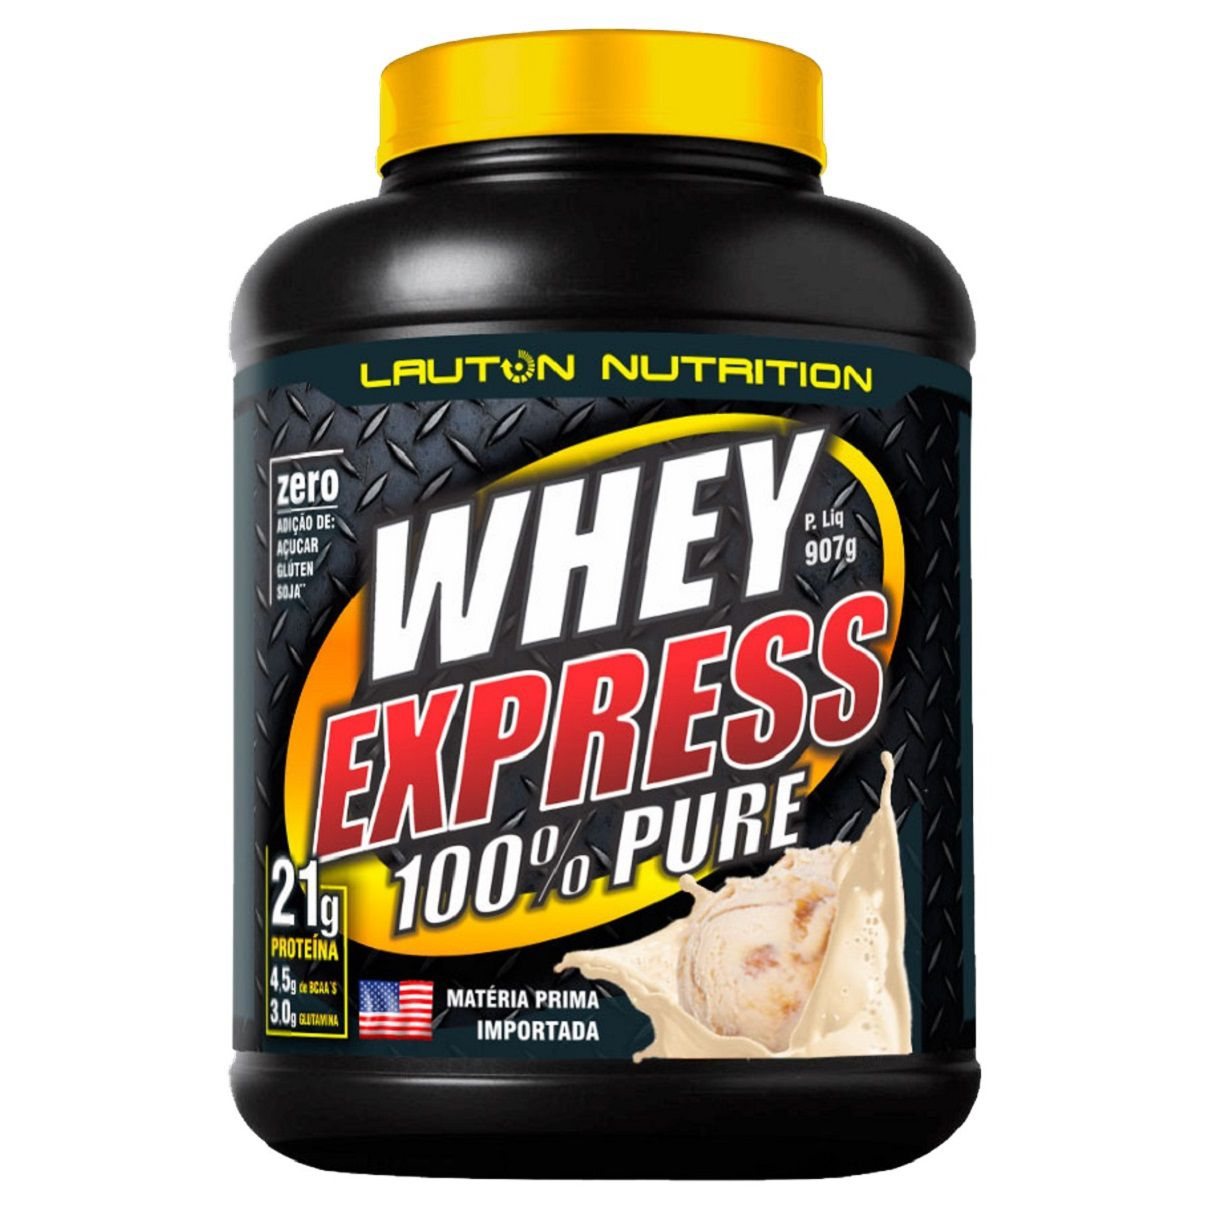 3x Whey Protein Express Lauton Nutrition 100% Pure 907g